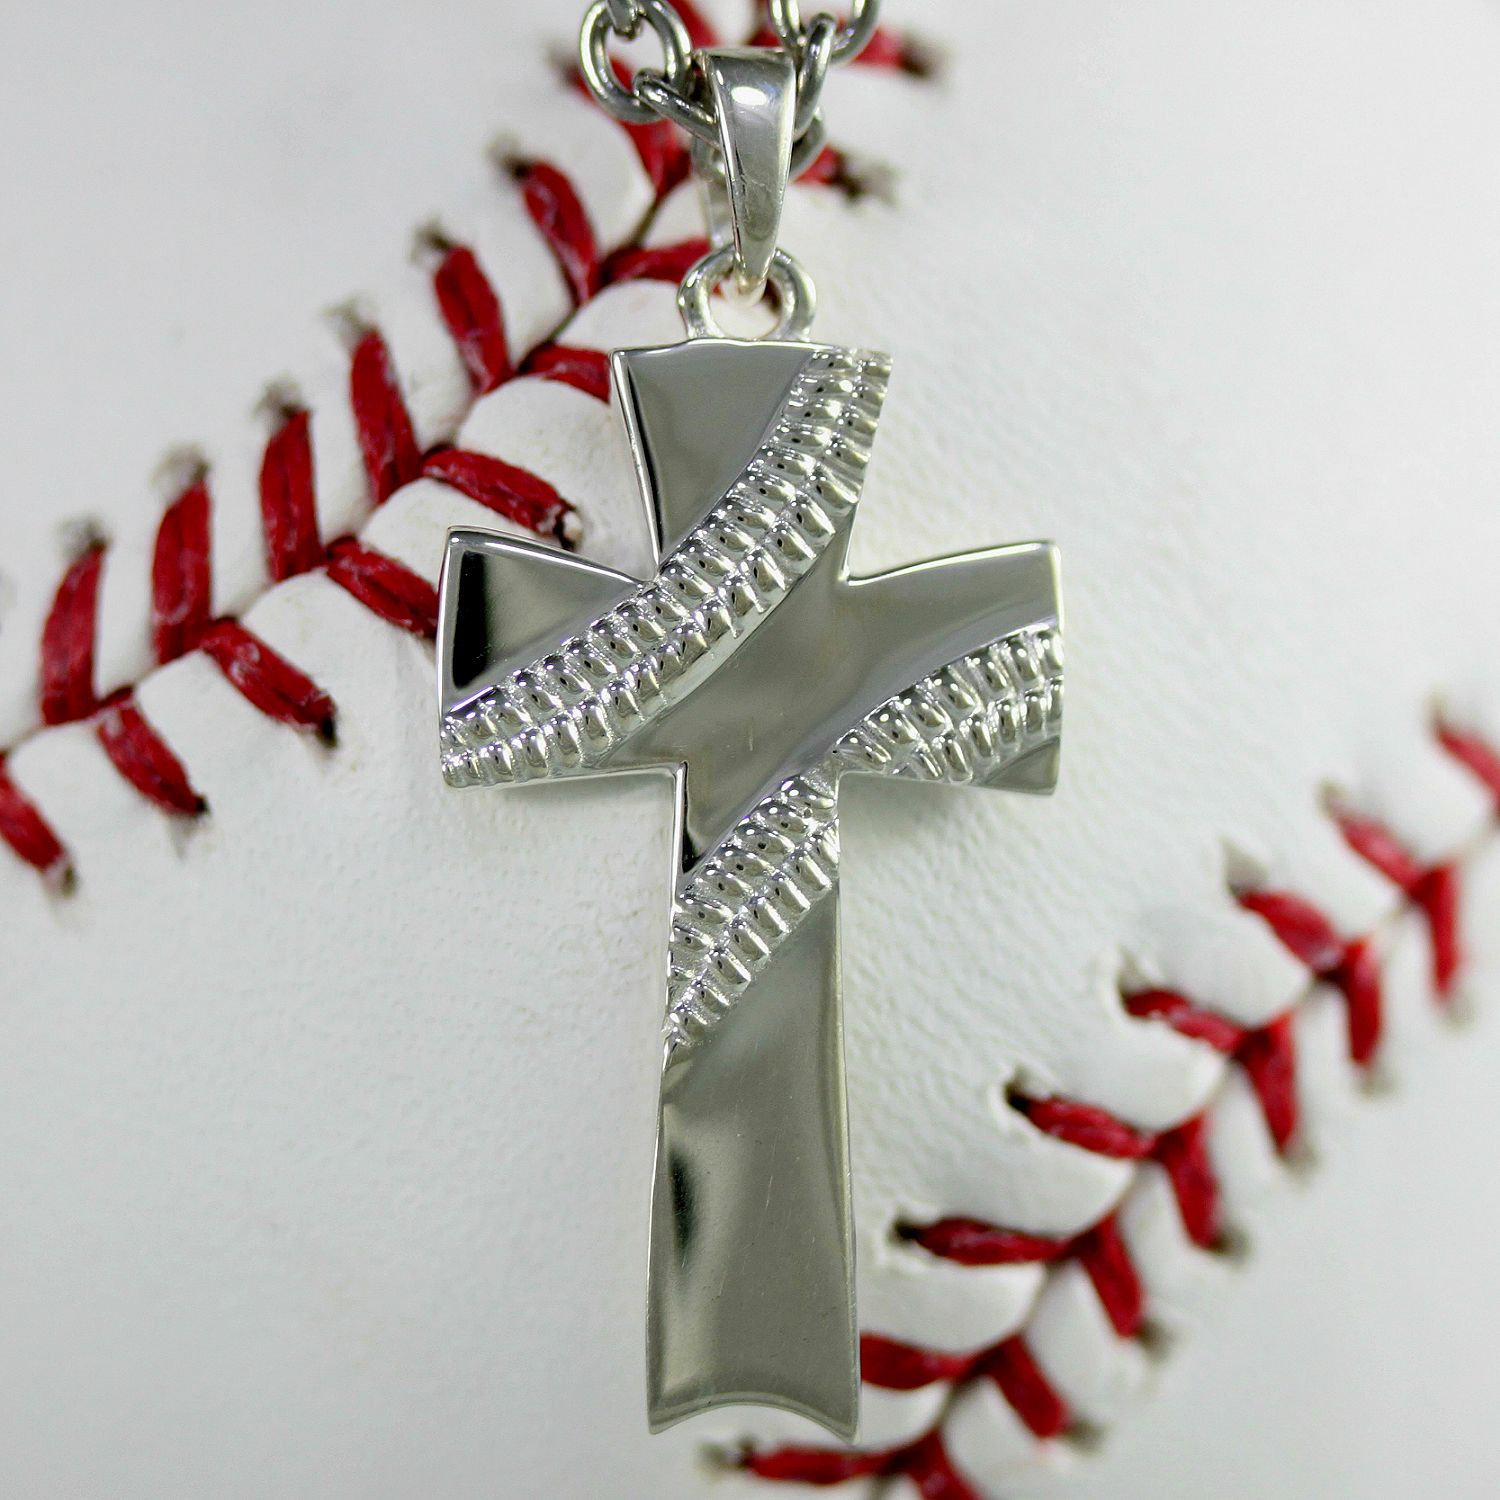 baseball steel cross products jewelry mens with palmbeach stainless chain silver detail sterling necklace at in cfm pendant